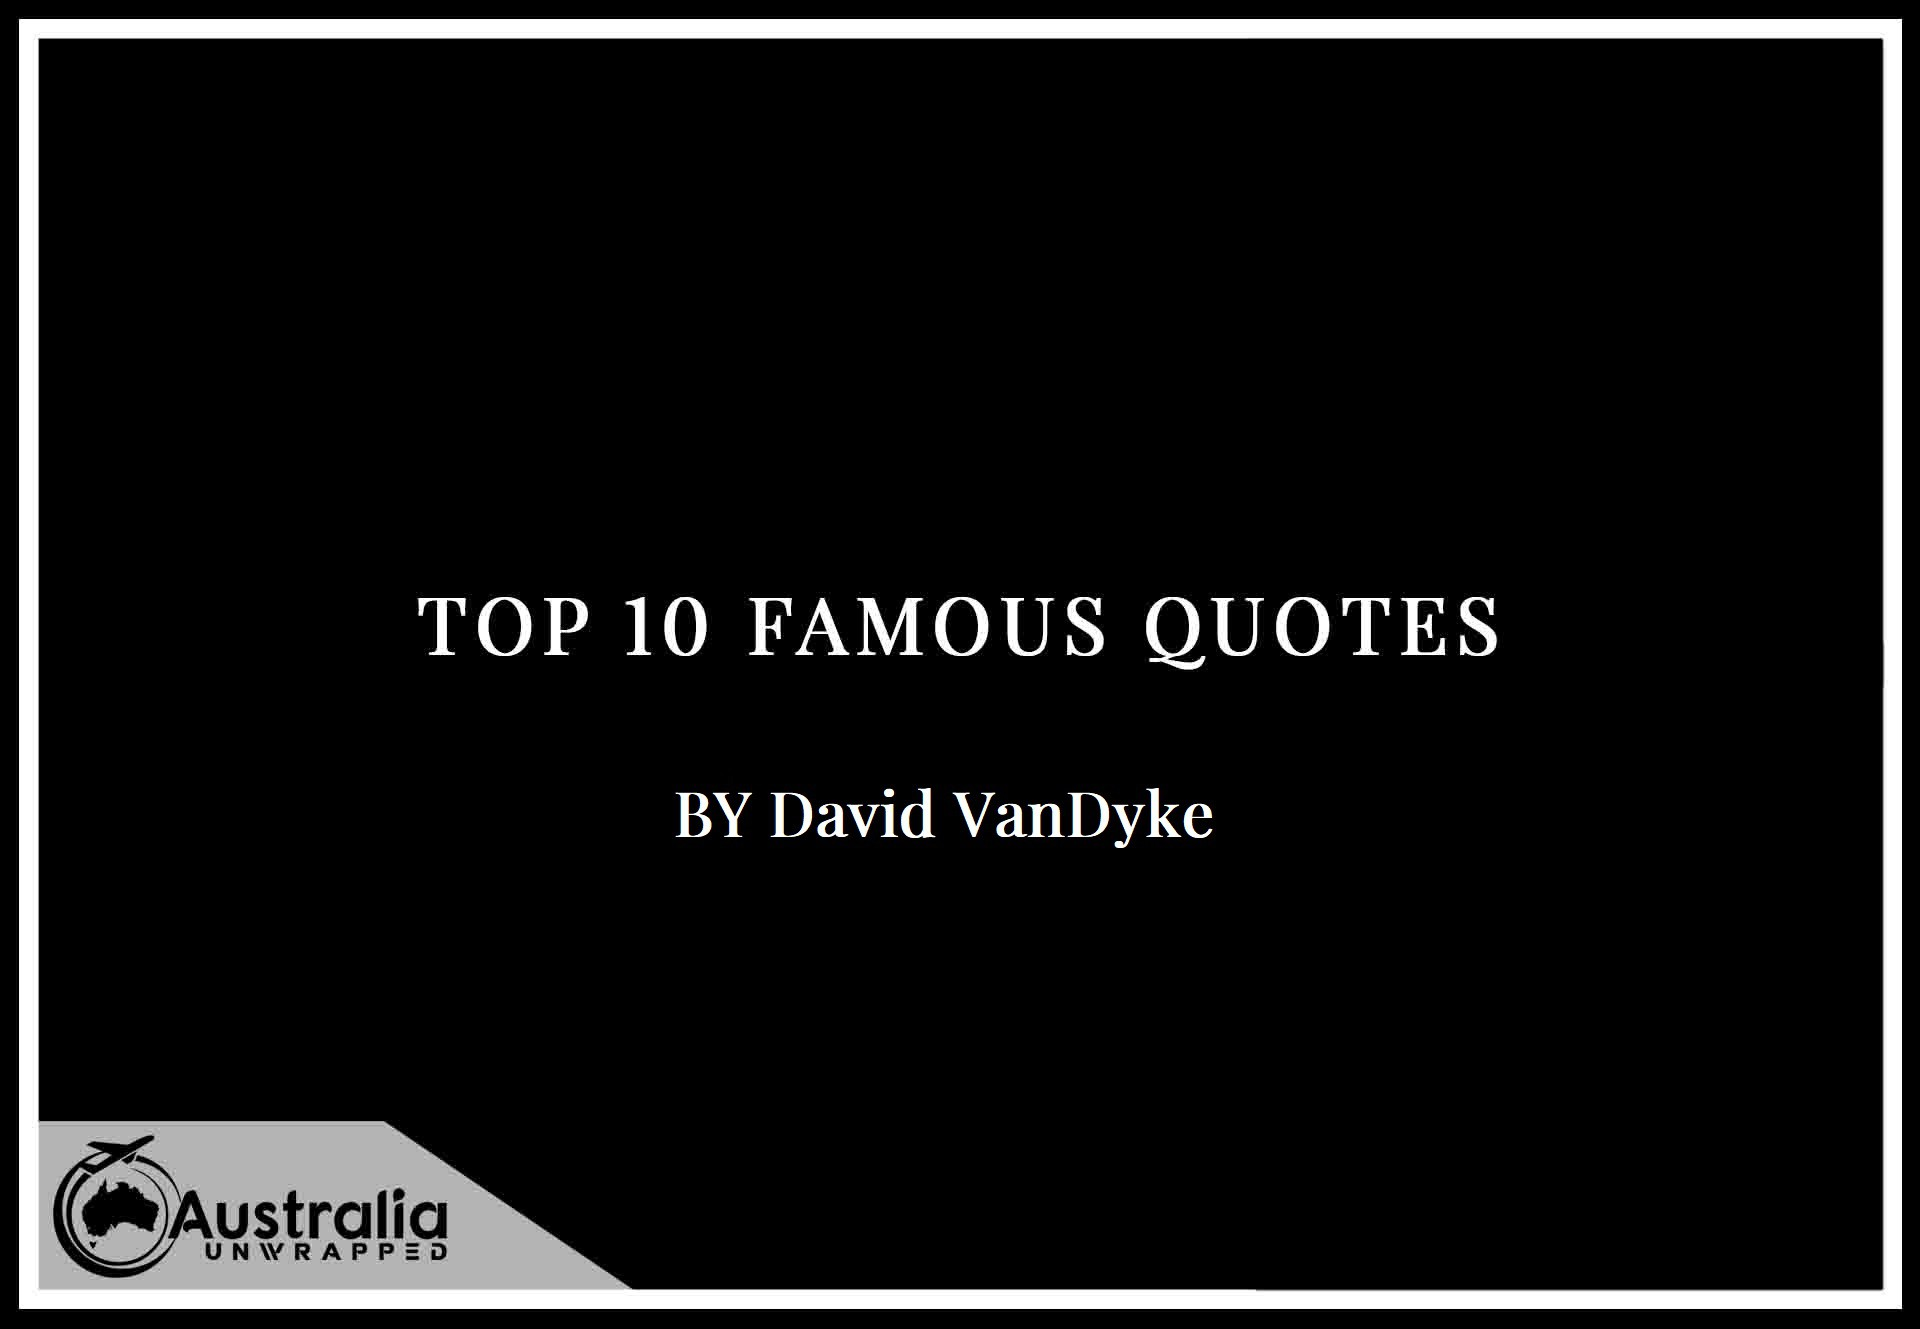 Top 10 Famous Quotes by Author David VanDyke